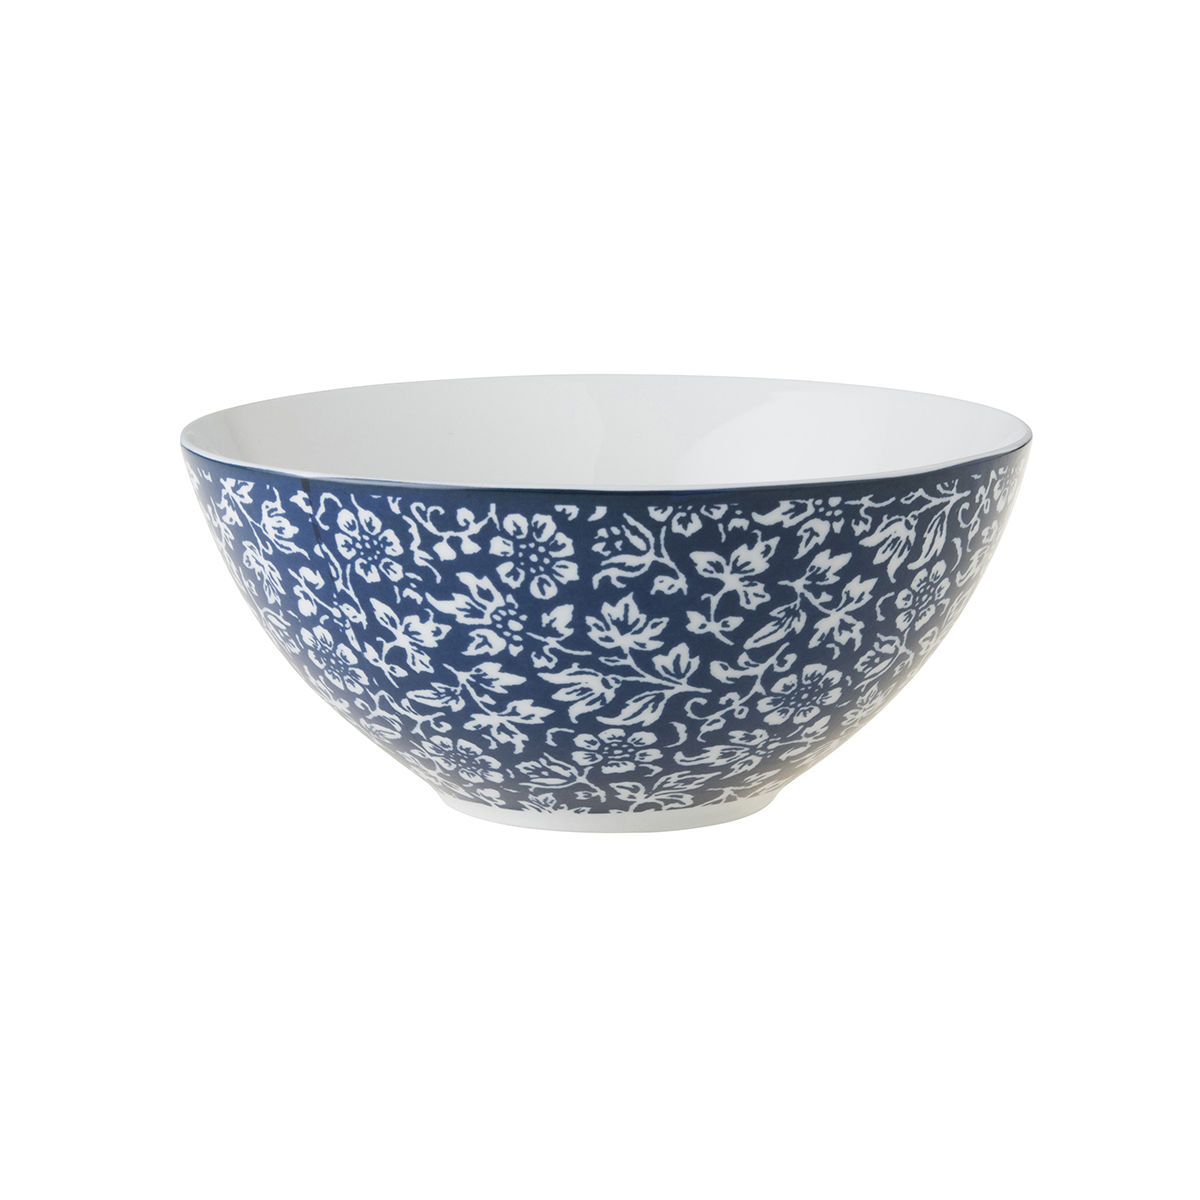 "Laura Ashley 6.4"" Bowl Sweet Allysum - product images  of"